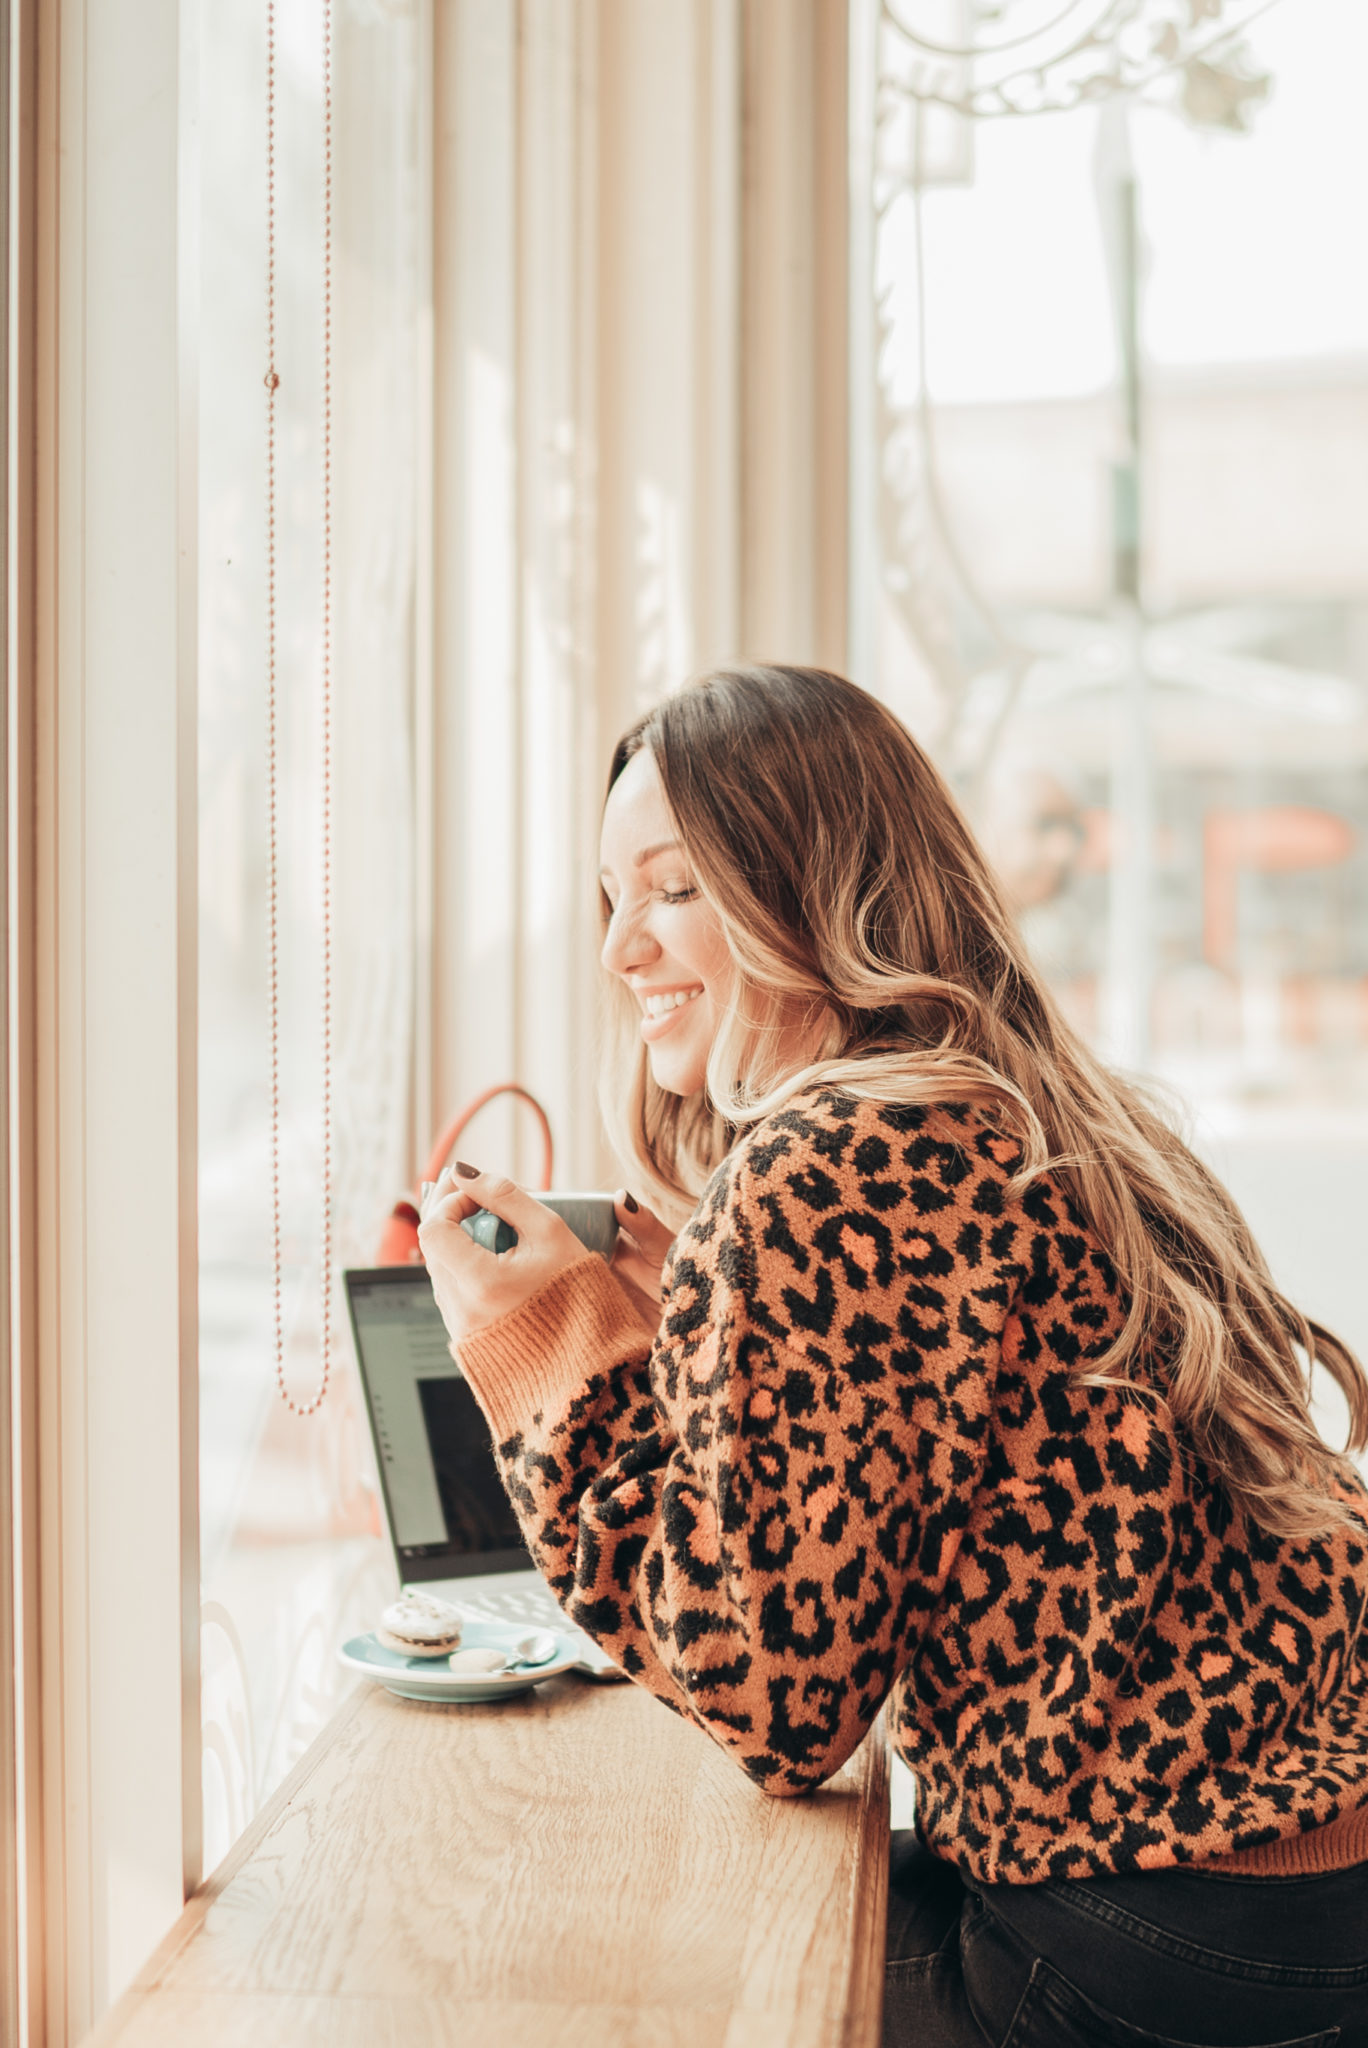 BLACK FRIDAY & CYBER MONDAY DEALS AND DISCOUNT CODES 2019 by popular San Francisco life and style blog, Just Add Glam: image of a woman sitting at a counter in a coffee shop.